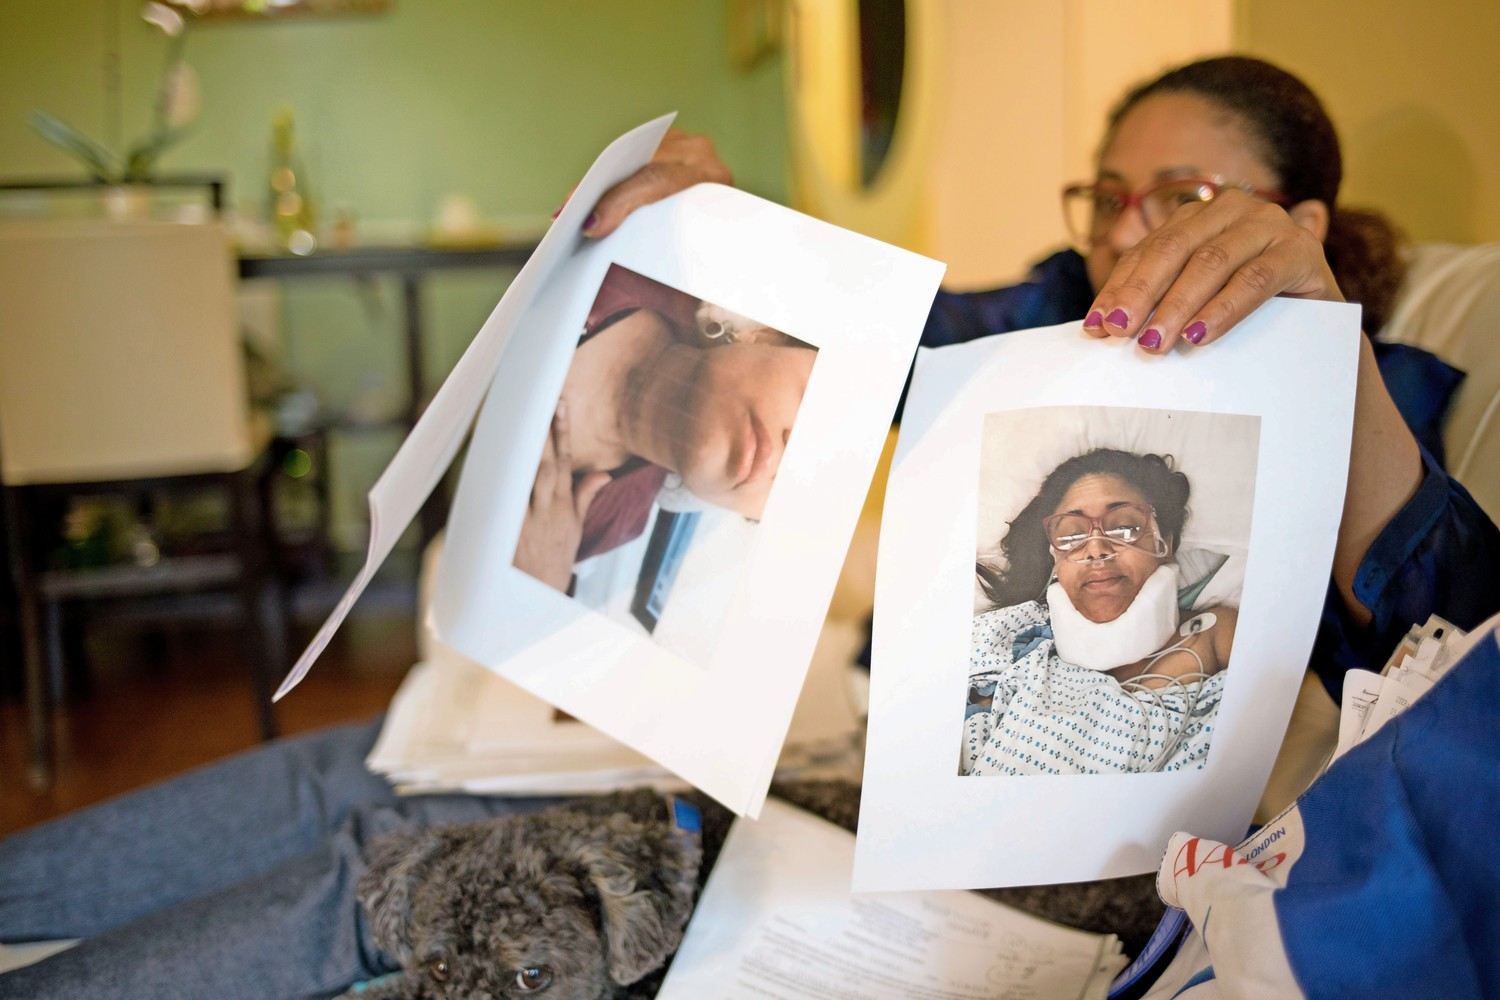 Claudia Imbert, a public school teacher, holds up photos of herself after she was hit by a car last year. After she finished teaching an at-home student, Imbert walked to her car when she was hit by a driver. The United Federation of Teachers denied Imbert her line of duty injury case, so she is suing.